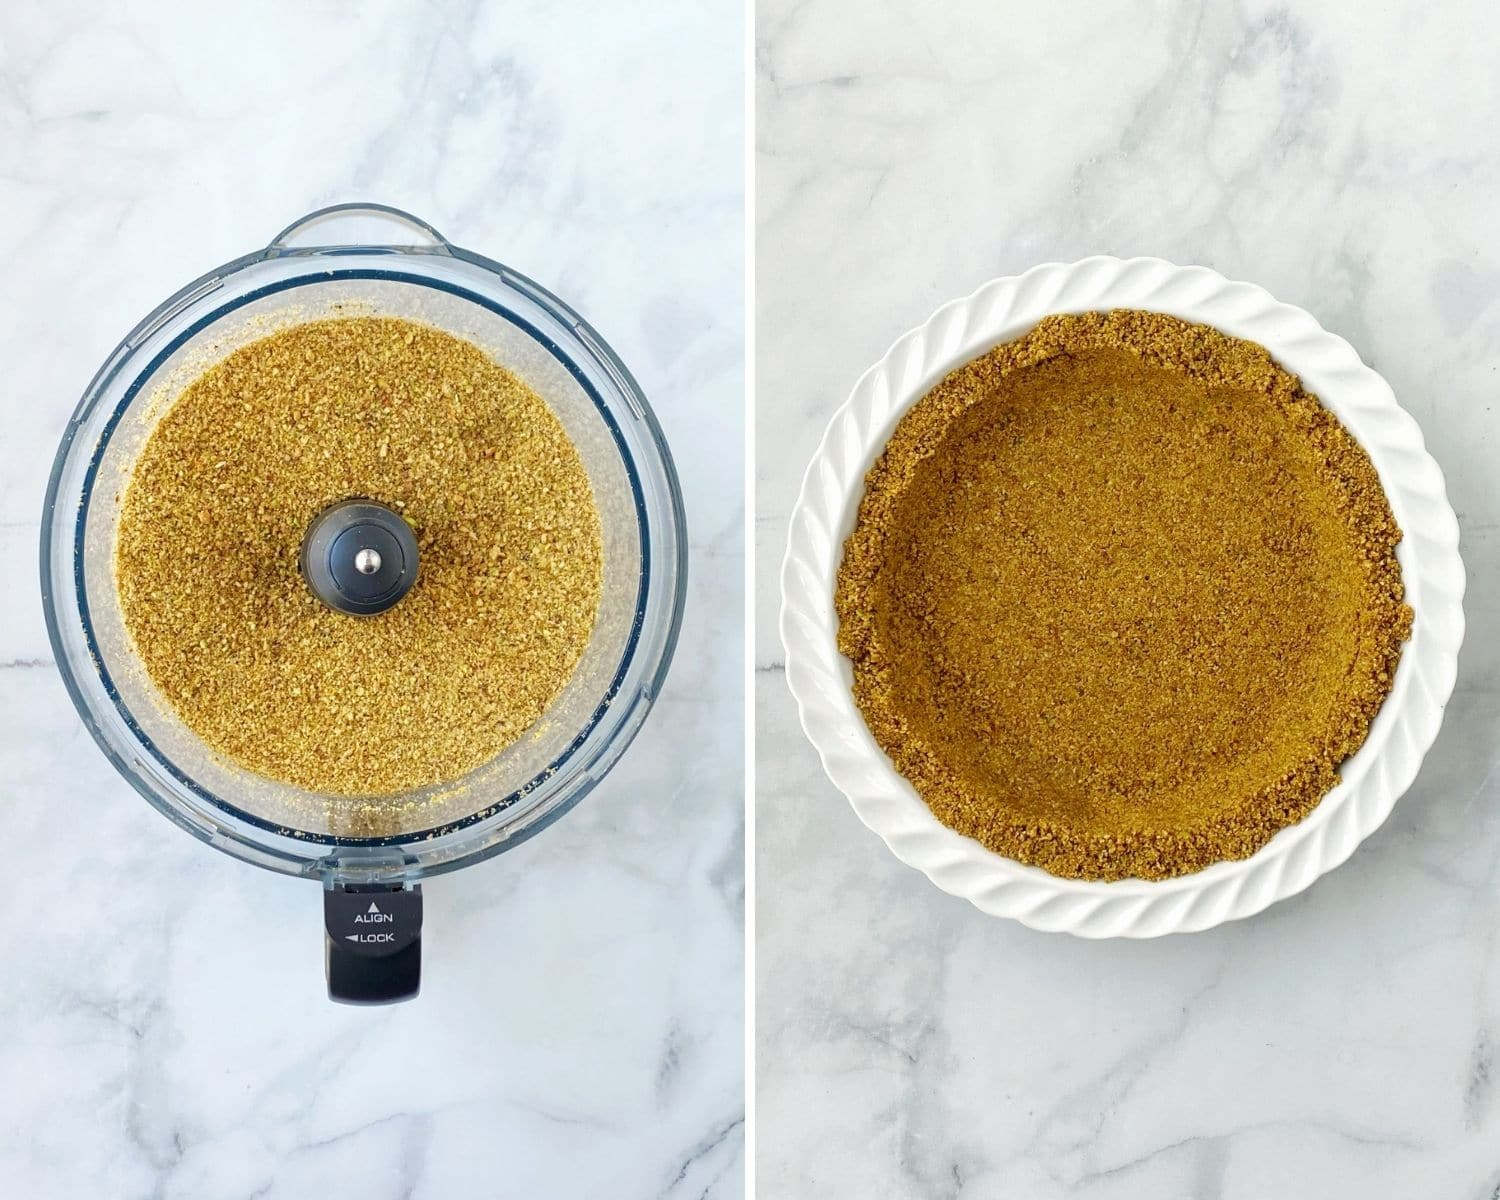 pistchios and almonds processed into crumbs and then formed into crust in the pie dish